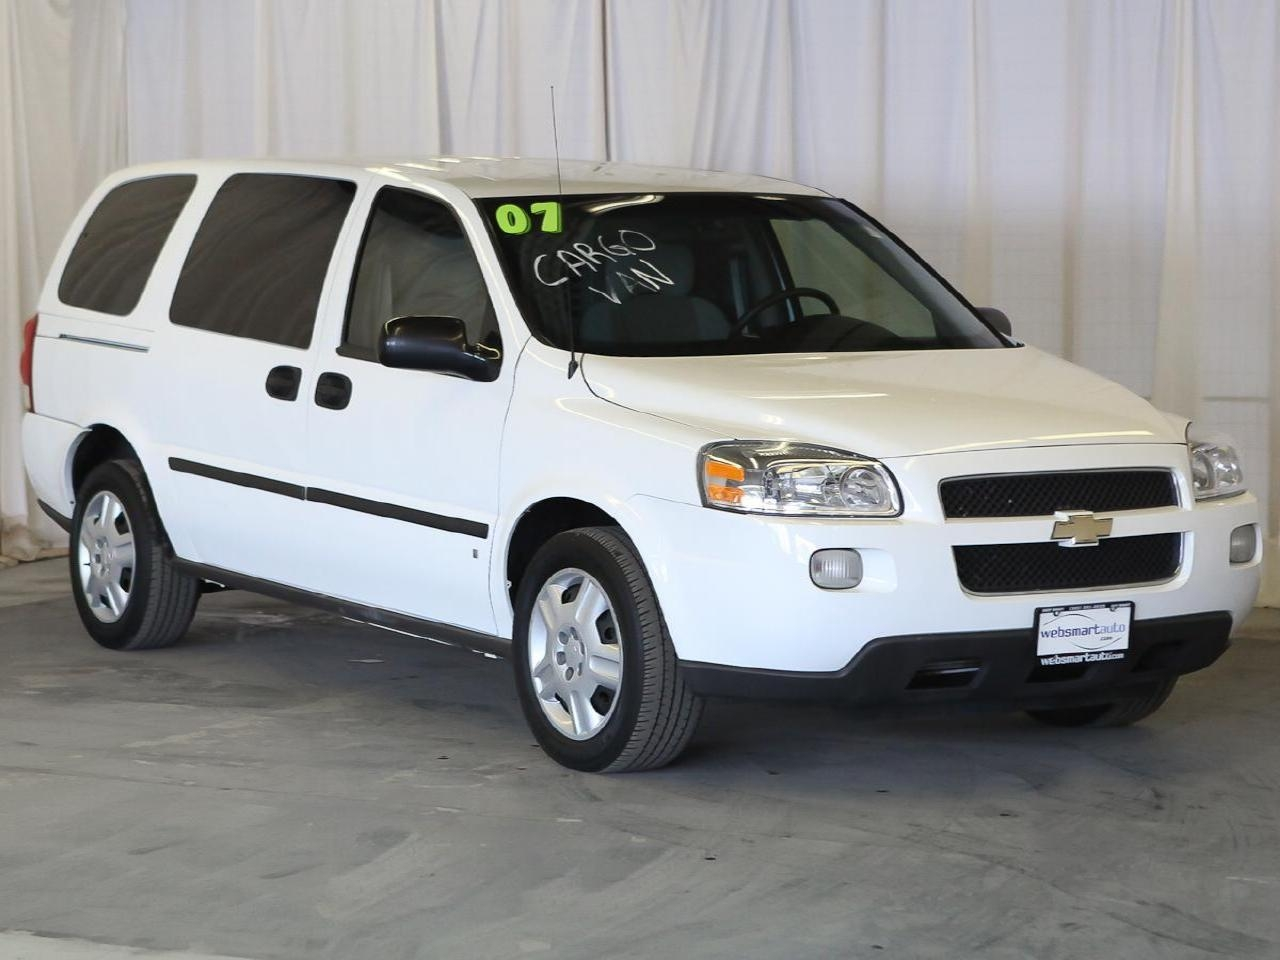 Watch additionally  in addition Chevrolet Uplander 2015 further Los Deseos De Thalia Grandes furthermore  on shift cable bushing 2003 pontiac montana repair kit